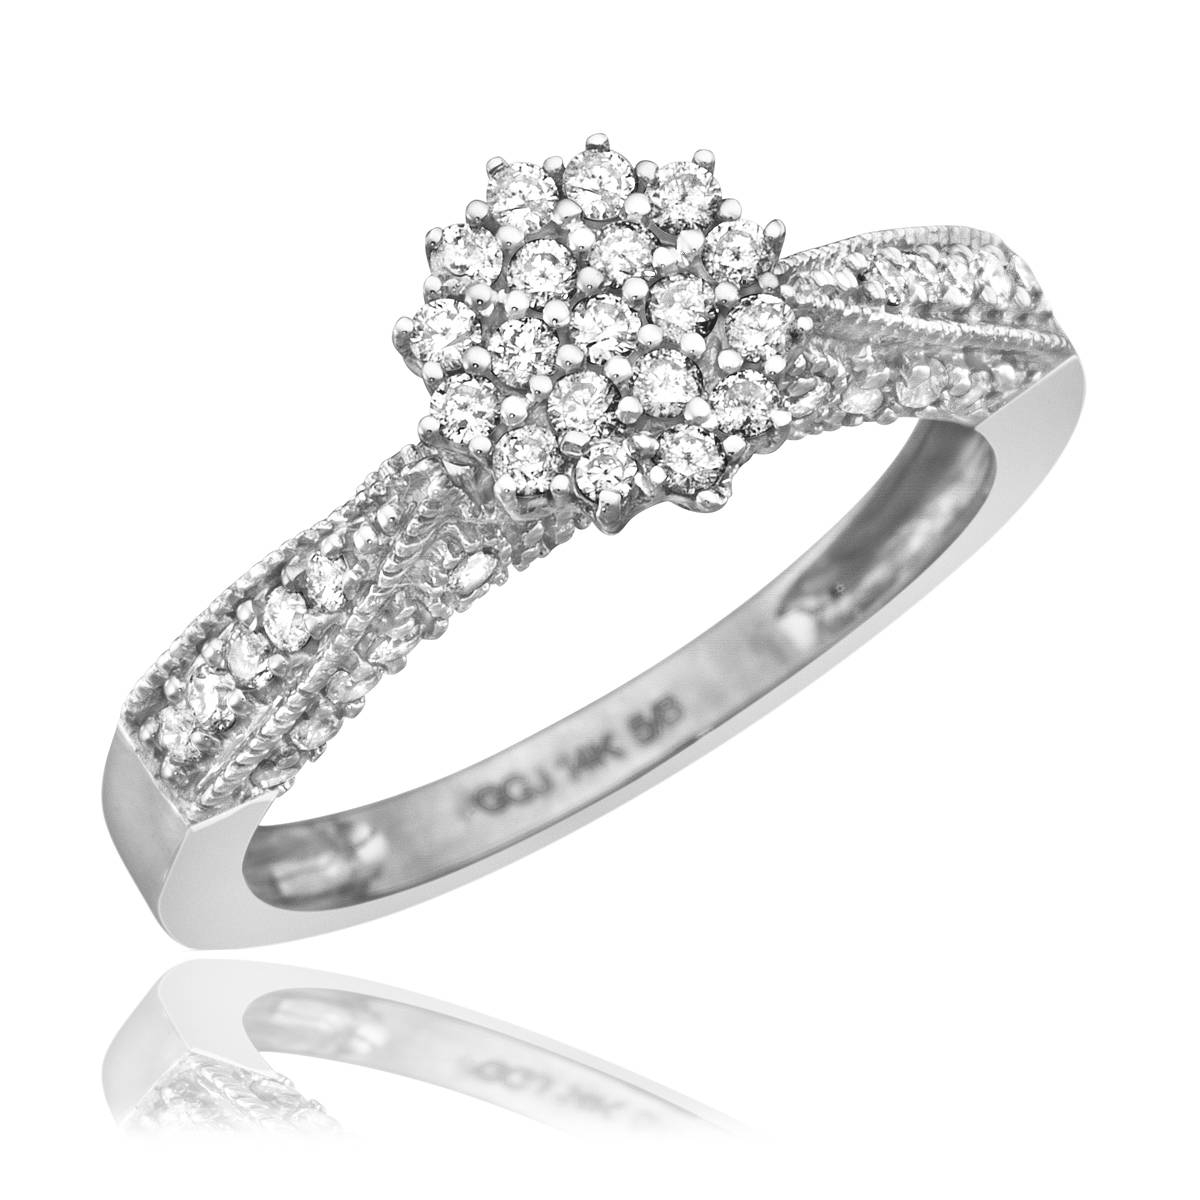 1 Carat Diamond Trio Wedding Ring Set 14K White Gold With Regard To 14K Wedding Rings (View 1 of 15)